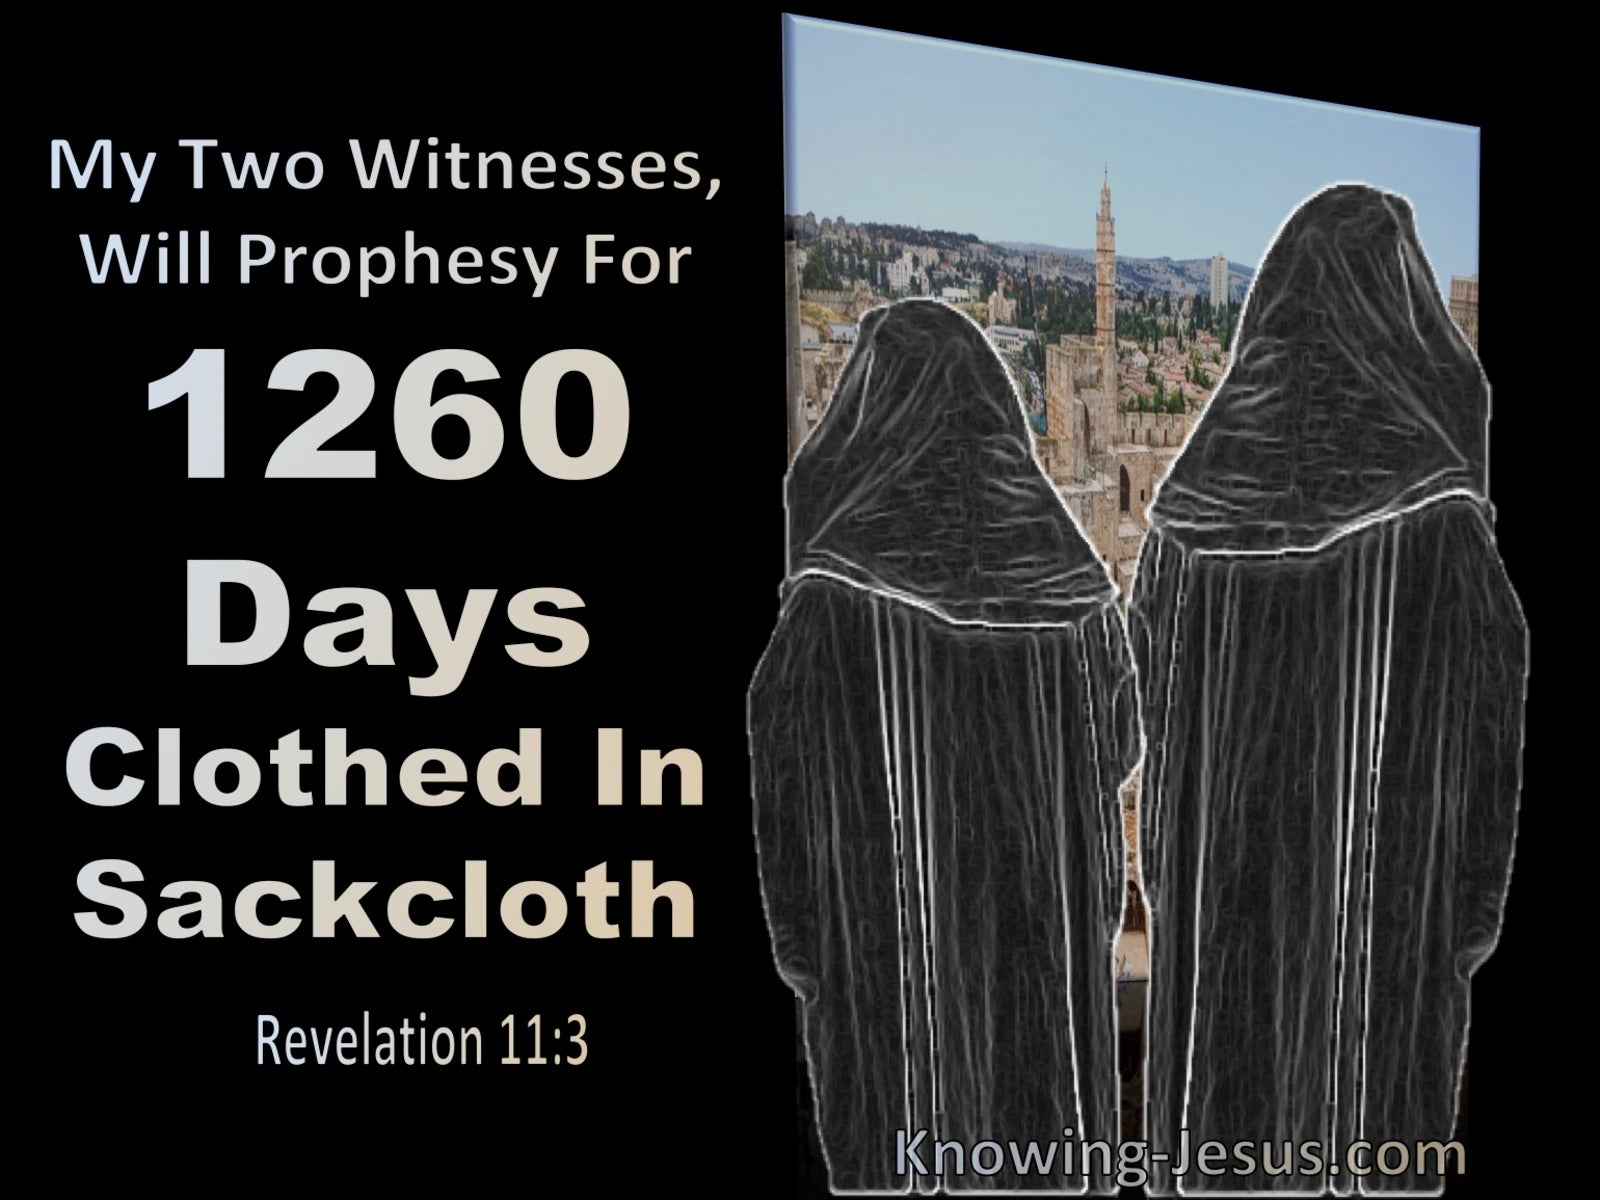 Revelation 11:3 My Two Witnesses Will Prophesy For 1260 Days Wearing Sackcloth (black)